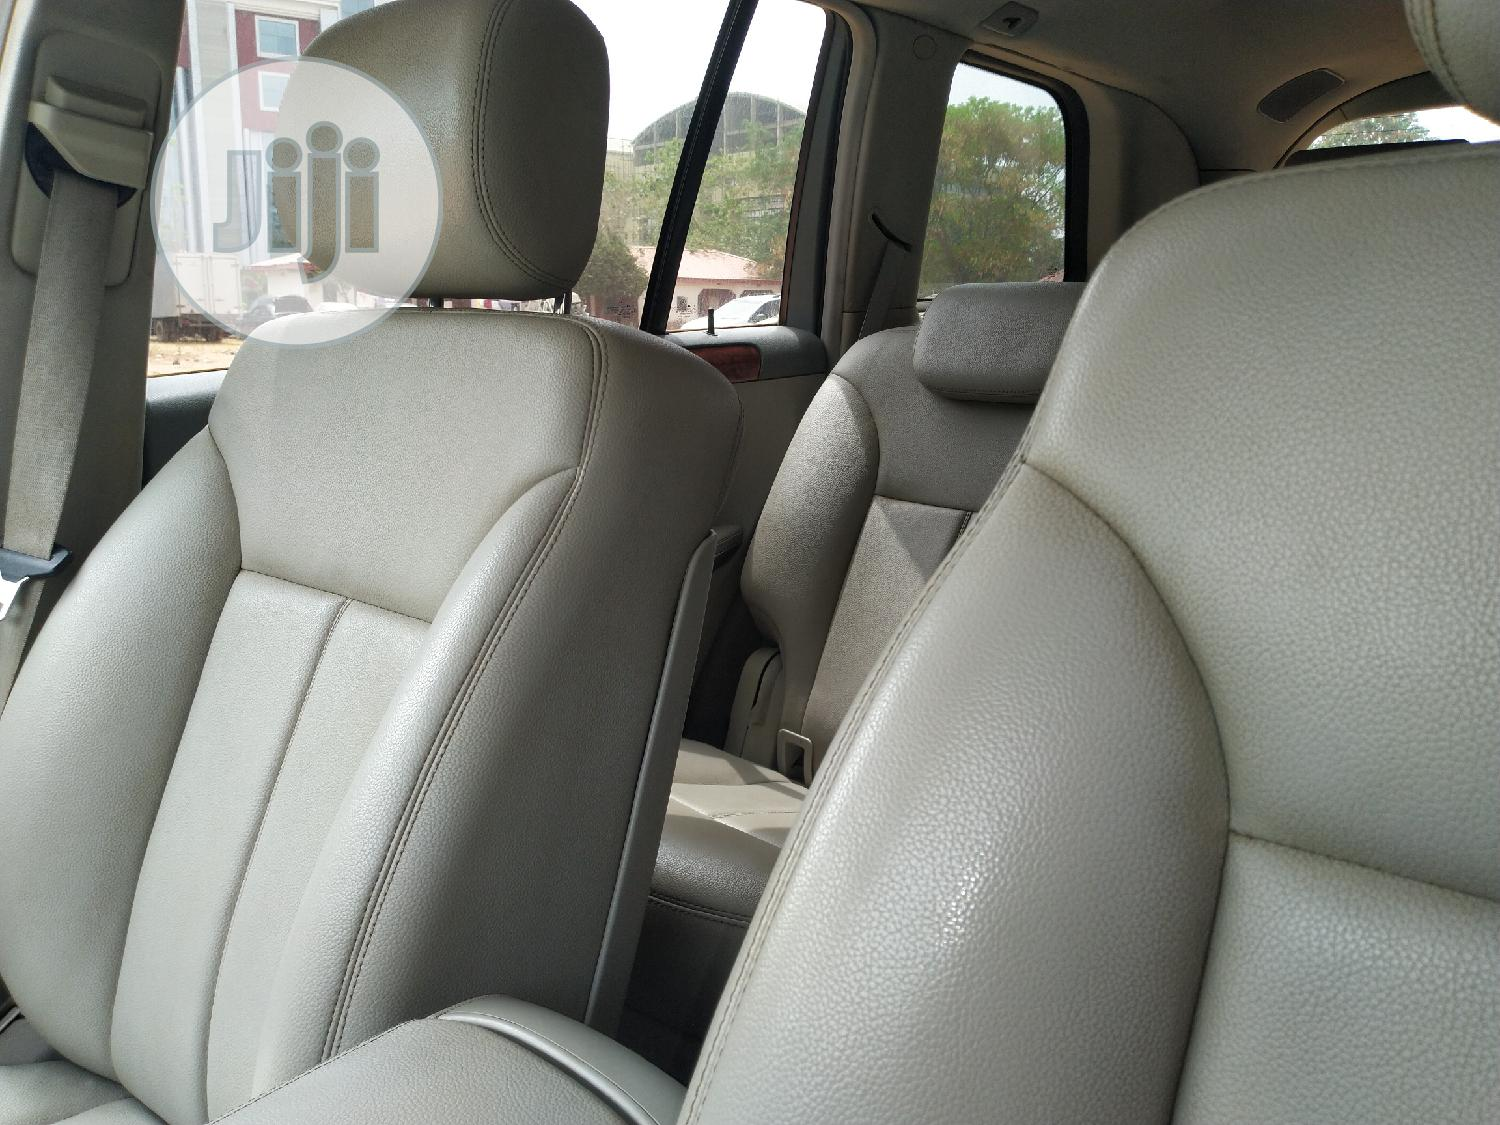 Mercedes-Benz GL Class 2007 GL 450 Silver   Cars for sale in Central Business Dis, Abuja (FCT) State, Nigeria